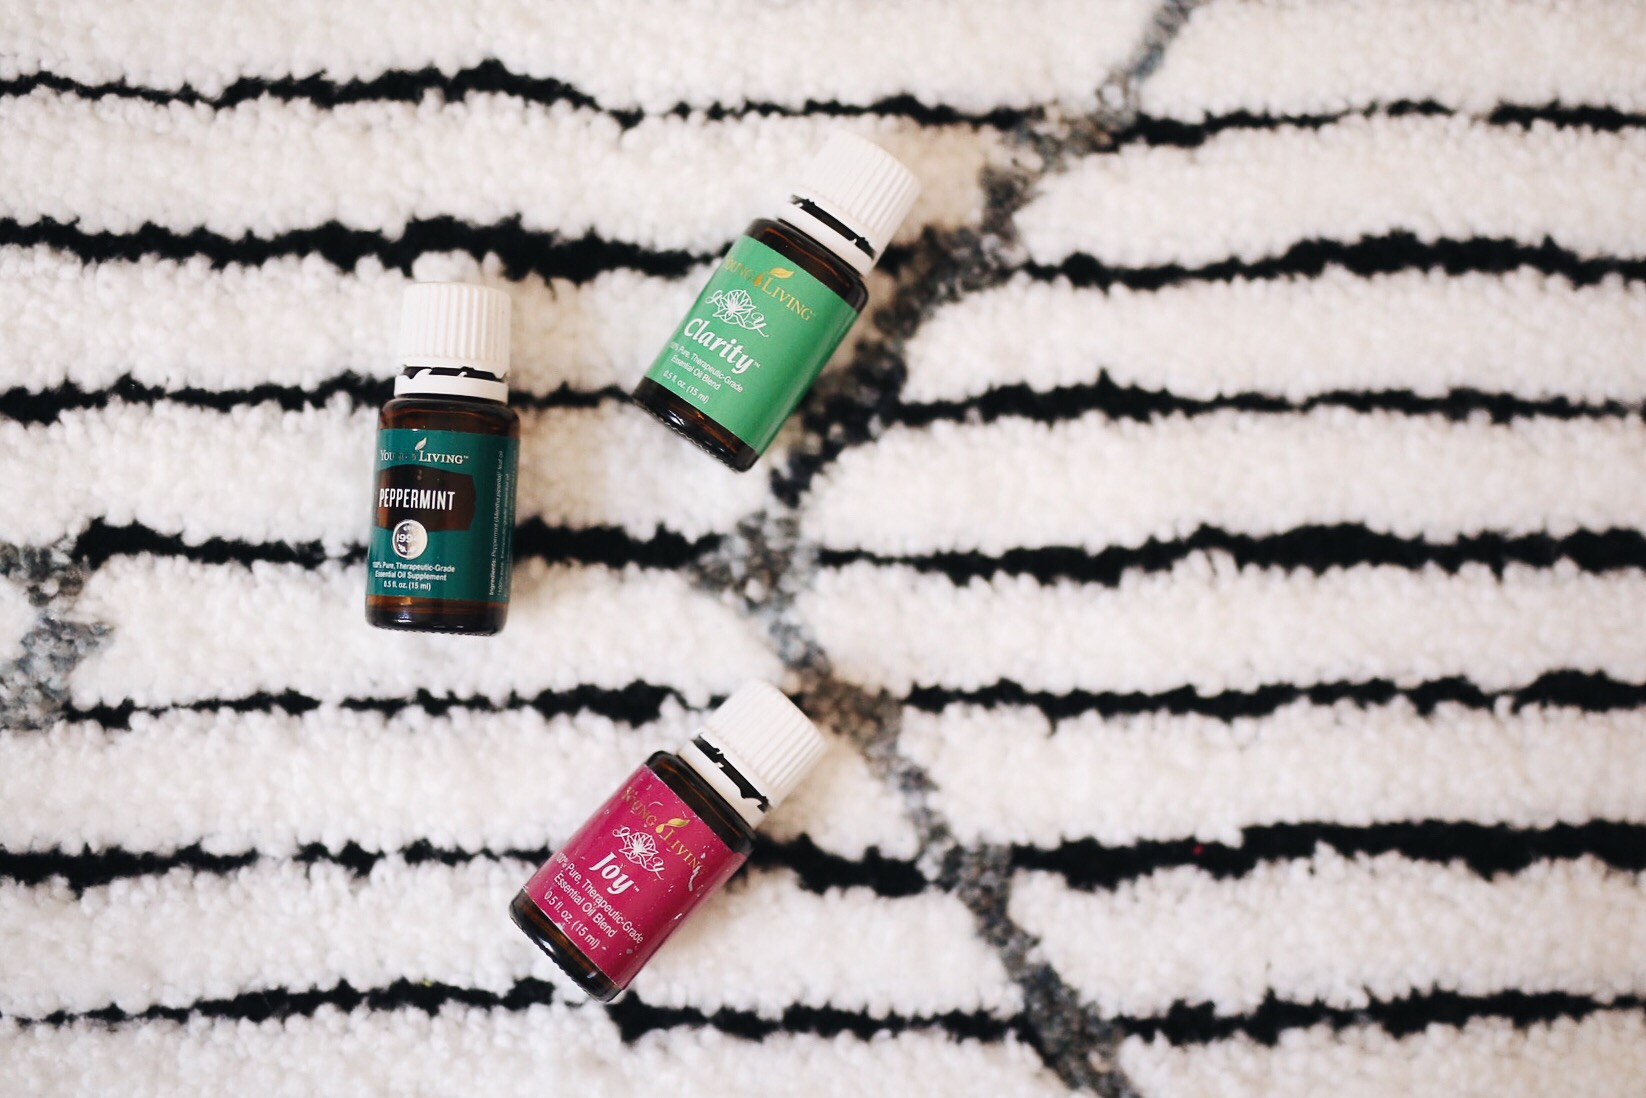 Essential Oils To Help You Focus | 5 Ways To Stay Focused Working From Home | elanaloo.com